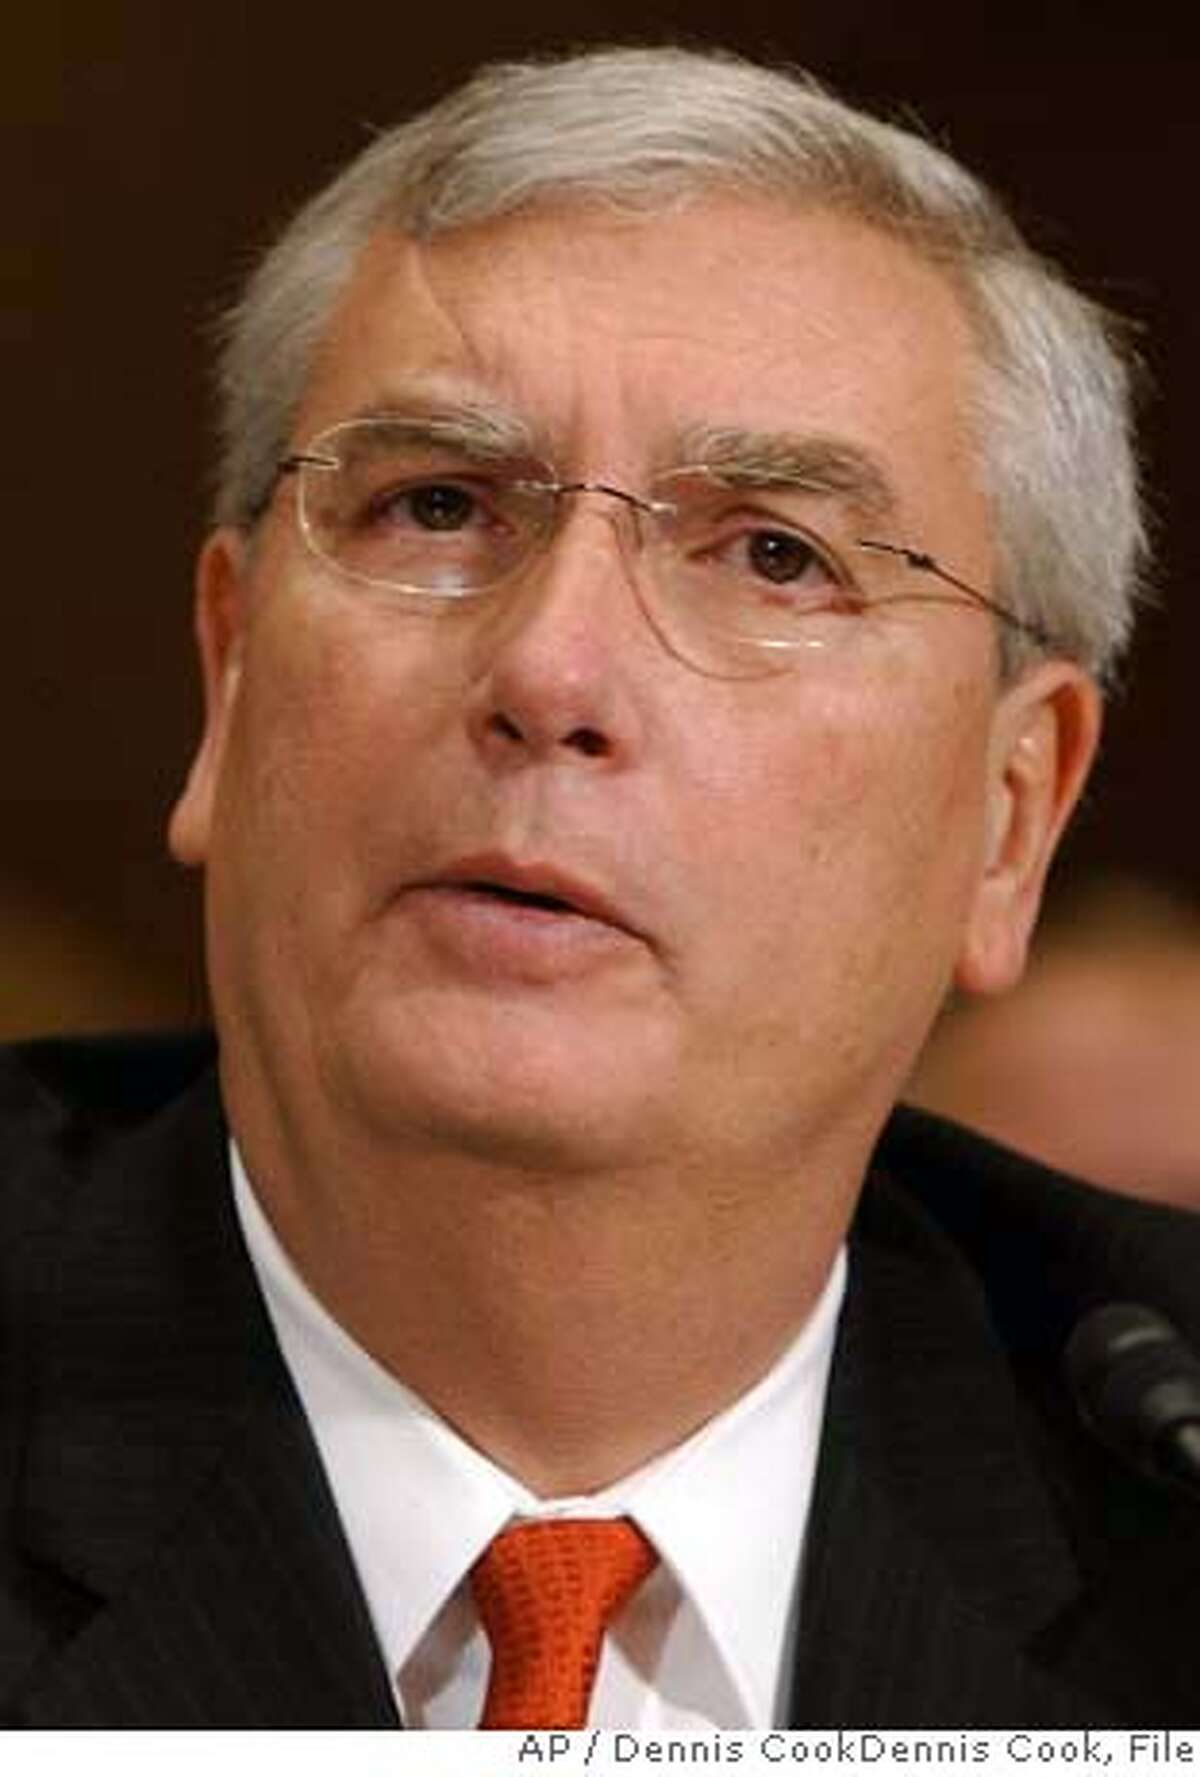 ** FILE ** Some career staffers concerned about the reputation of the Environmental Protection Agency believed that Administrator Stephen Johnson, seen here in a file photo taken Thursday, Jan. 24, 2008, in Washington, would have to consider resigning if he turned down California's request to reduce vehicle greenhouse gas emissions, newly released documents show. (AP Photo/Dennis Cook)